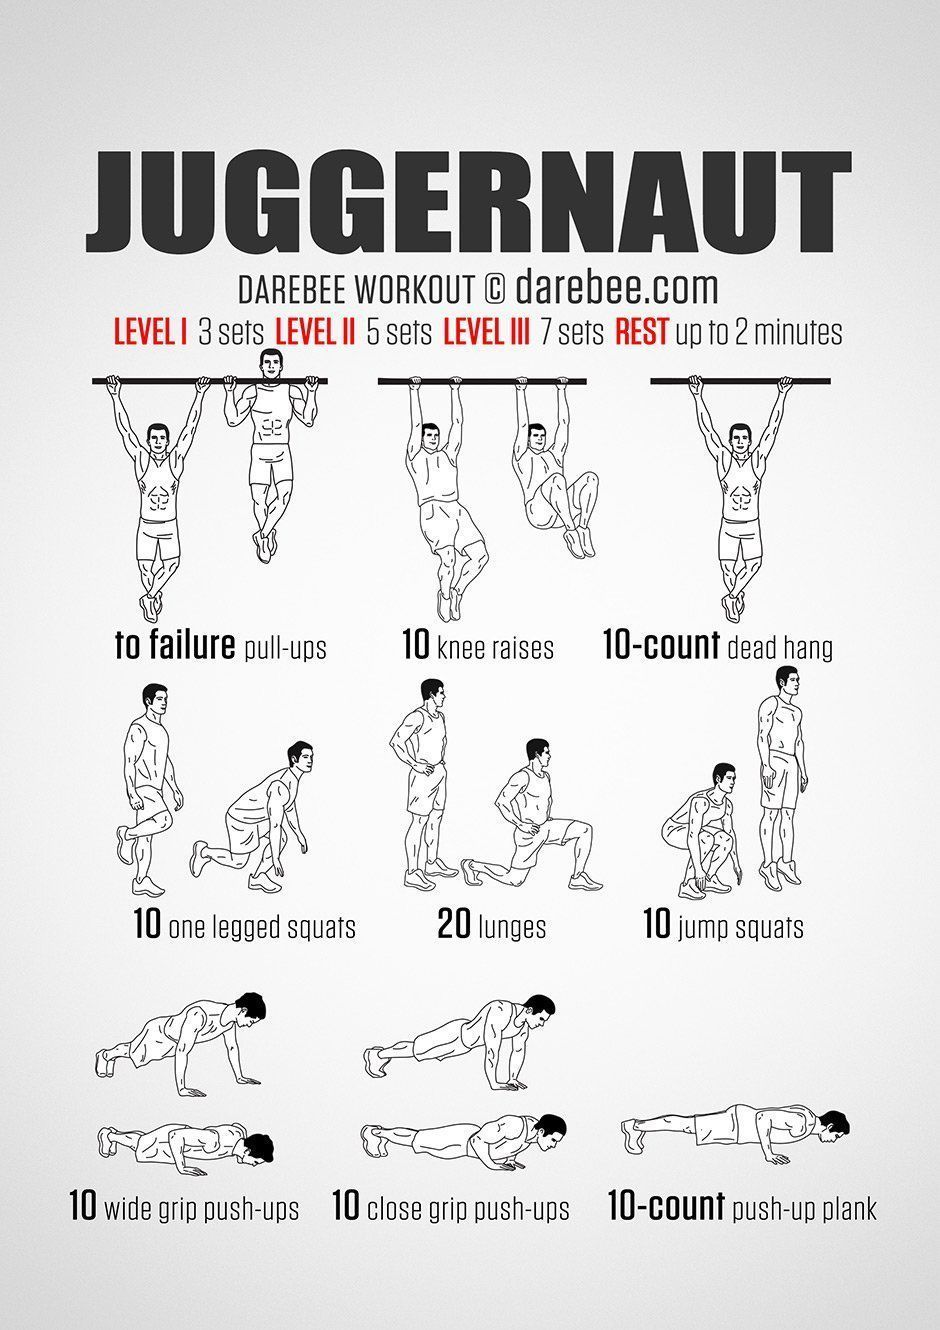 juggernaut-workout